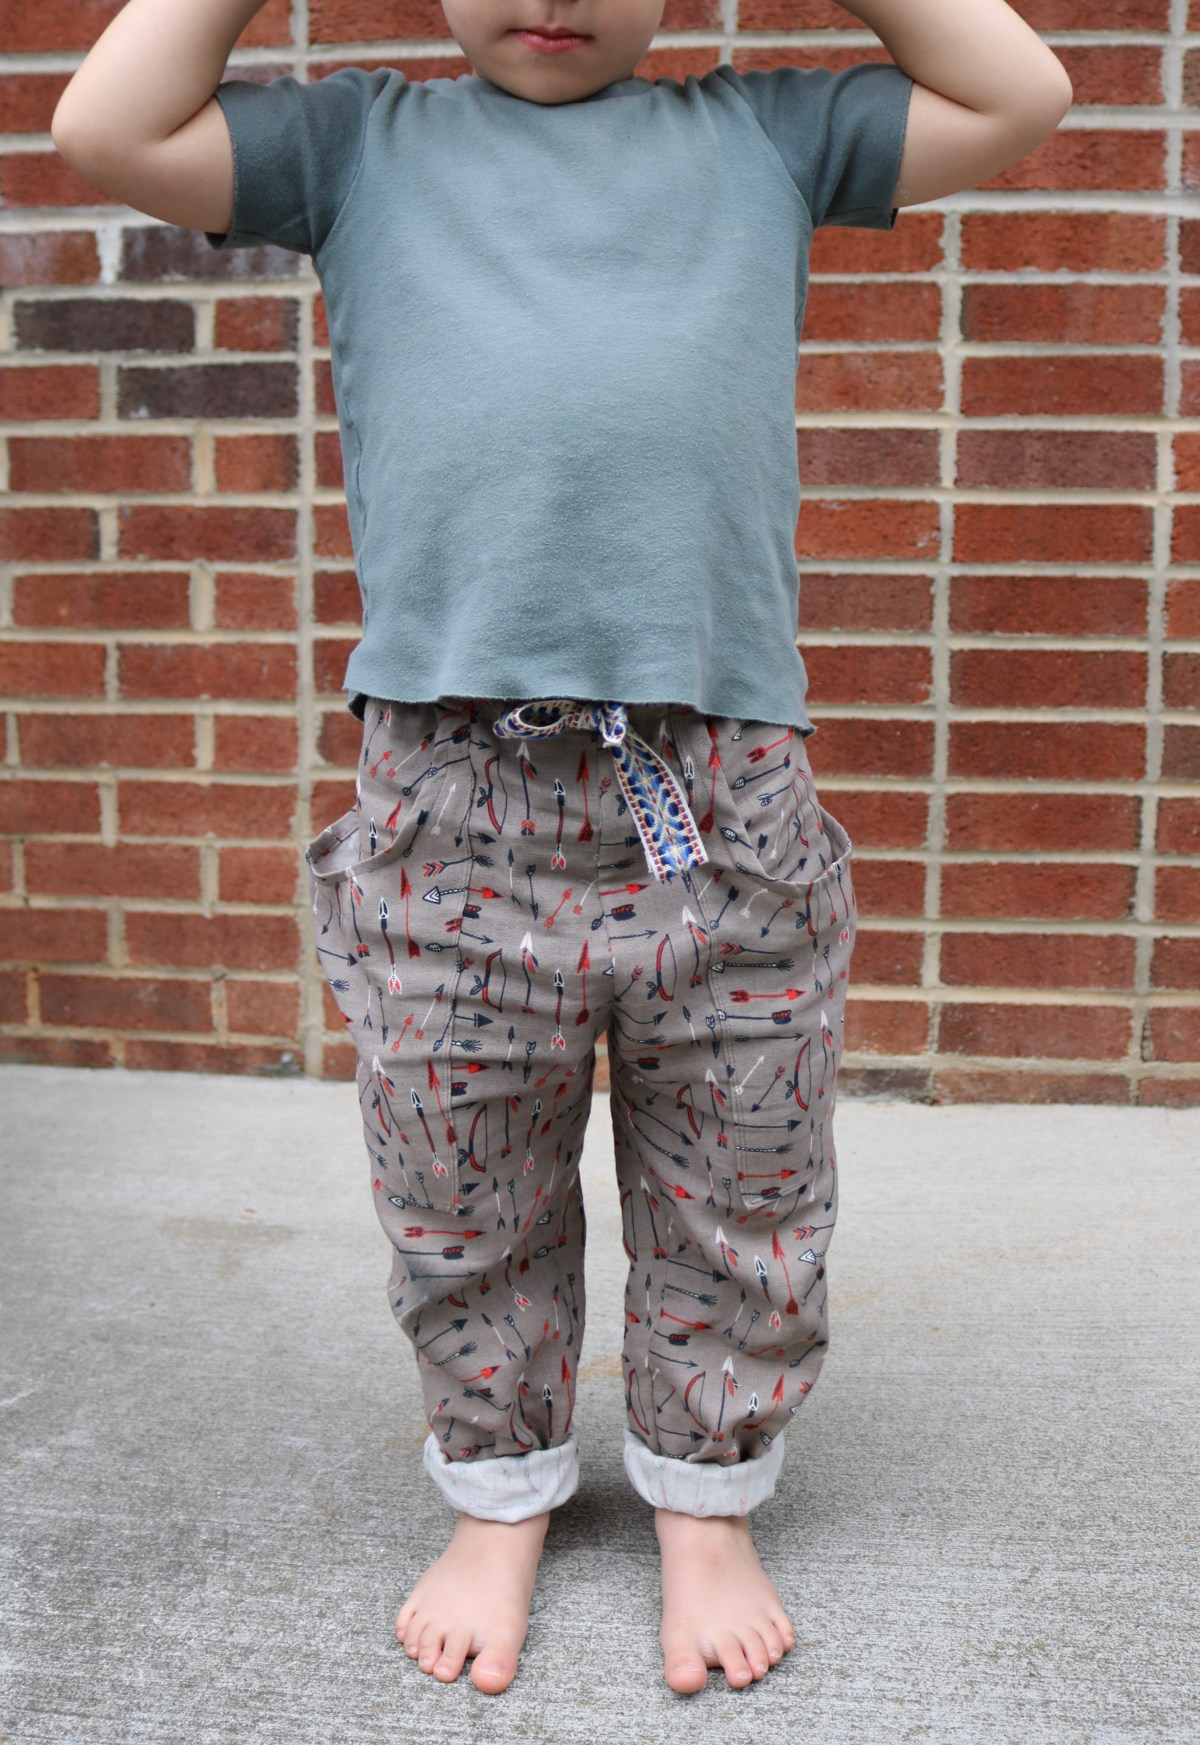 Preschool aged child in a blue shirt and pair of grey woven pants that have red, blue, and white arrows printed on them.